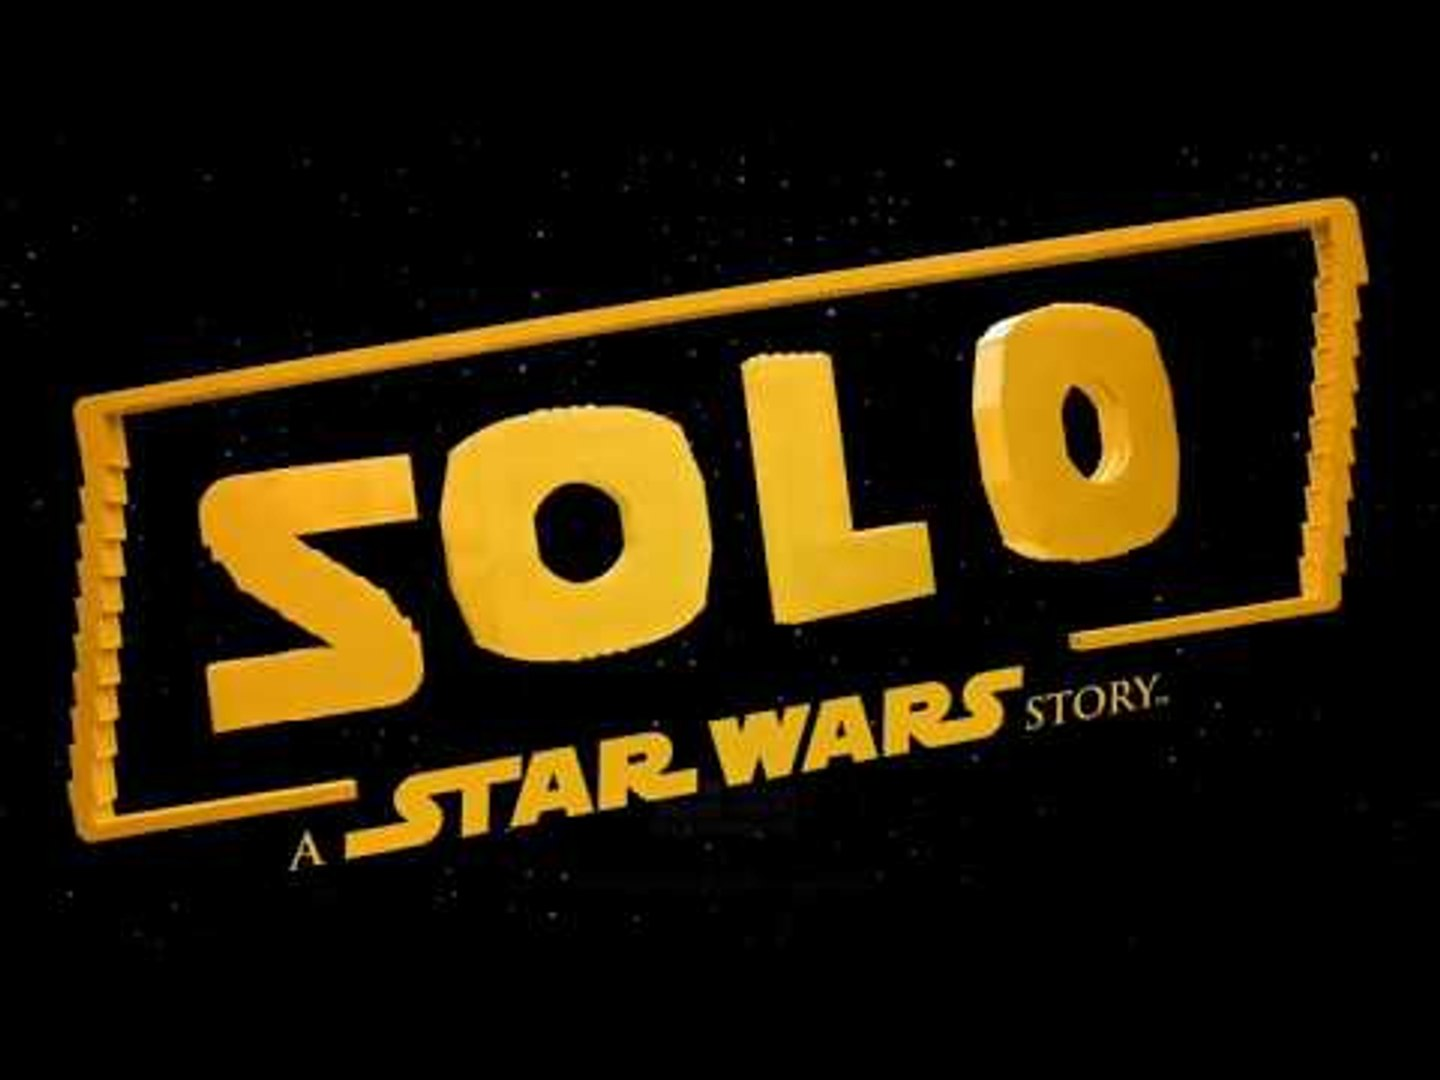 LEGO SOLO: A STAR WARS MOVIE (FIRST LOOK - Trailer #1) 2018 MovieClips Trailers